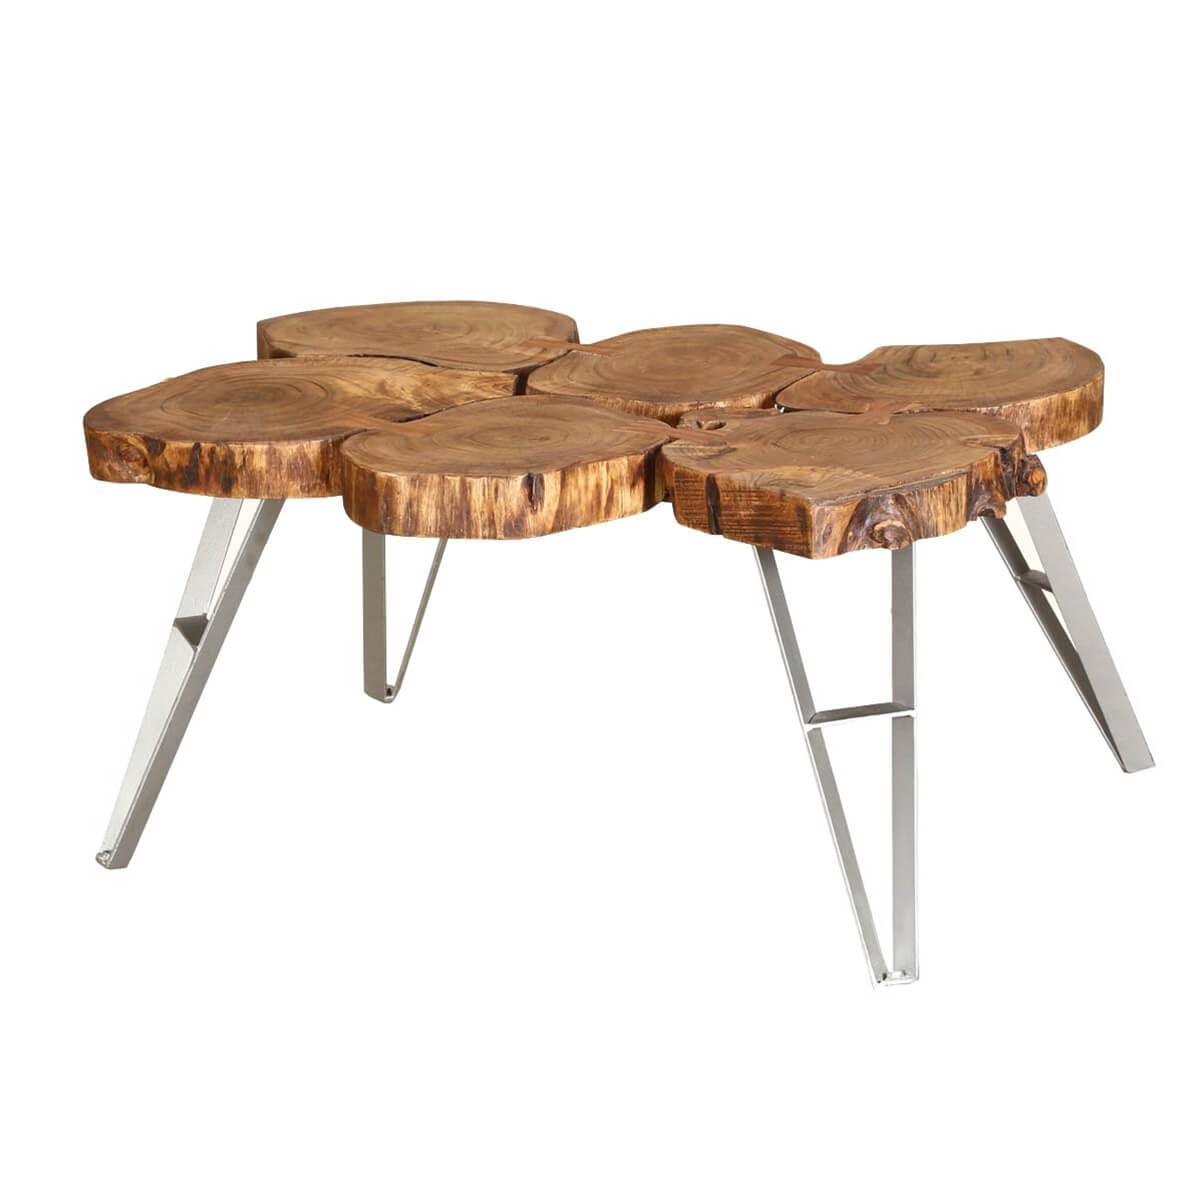 Industrial rustic mango wood iron rolling coffee table for Rustic iron table legs